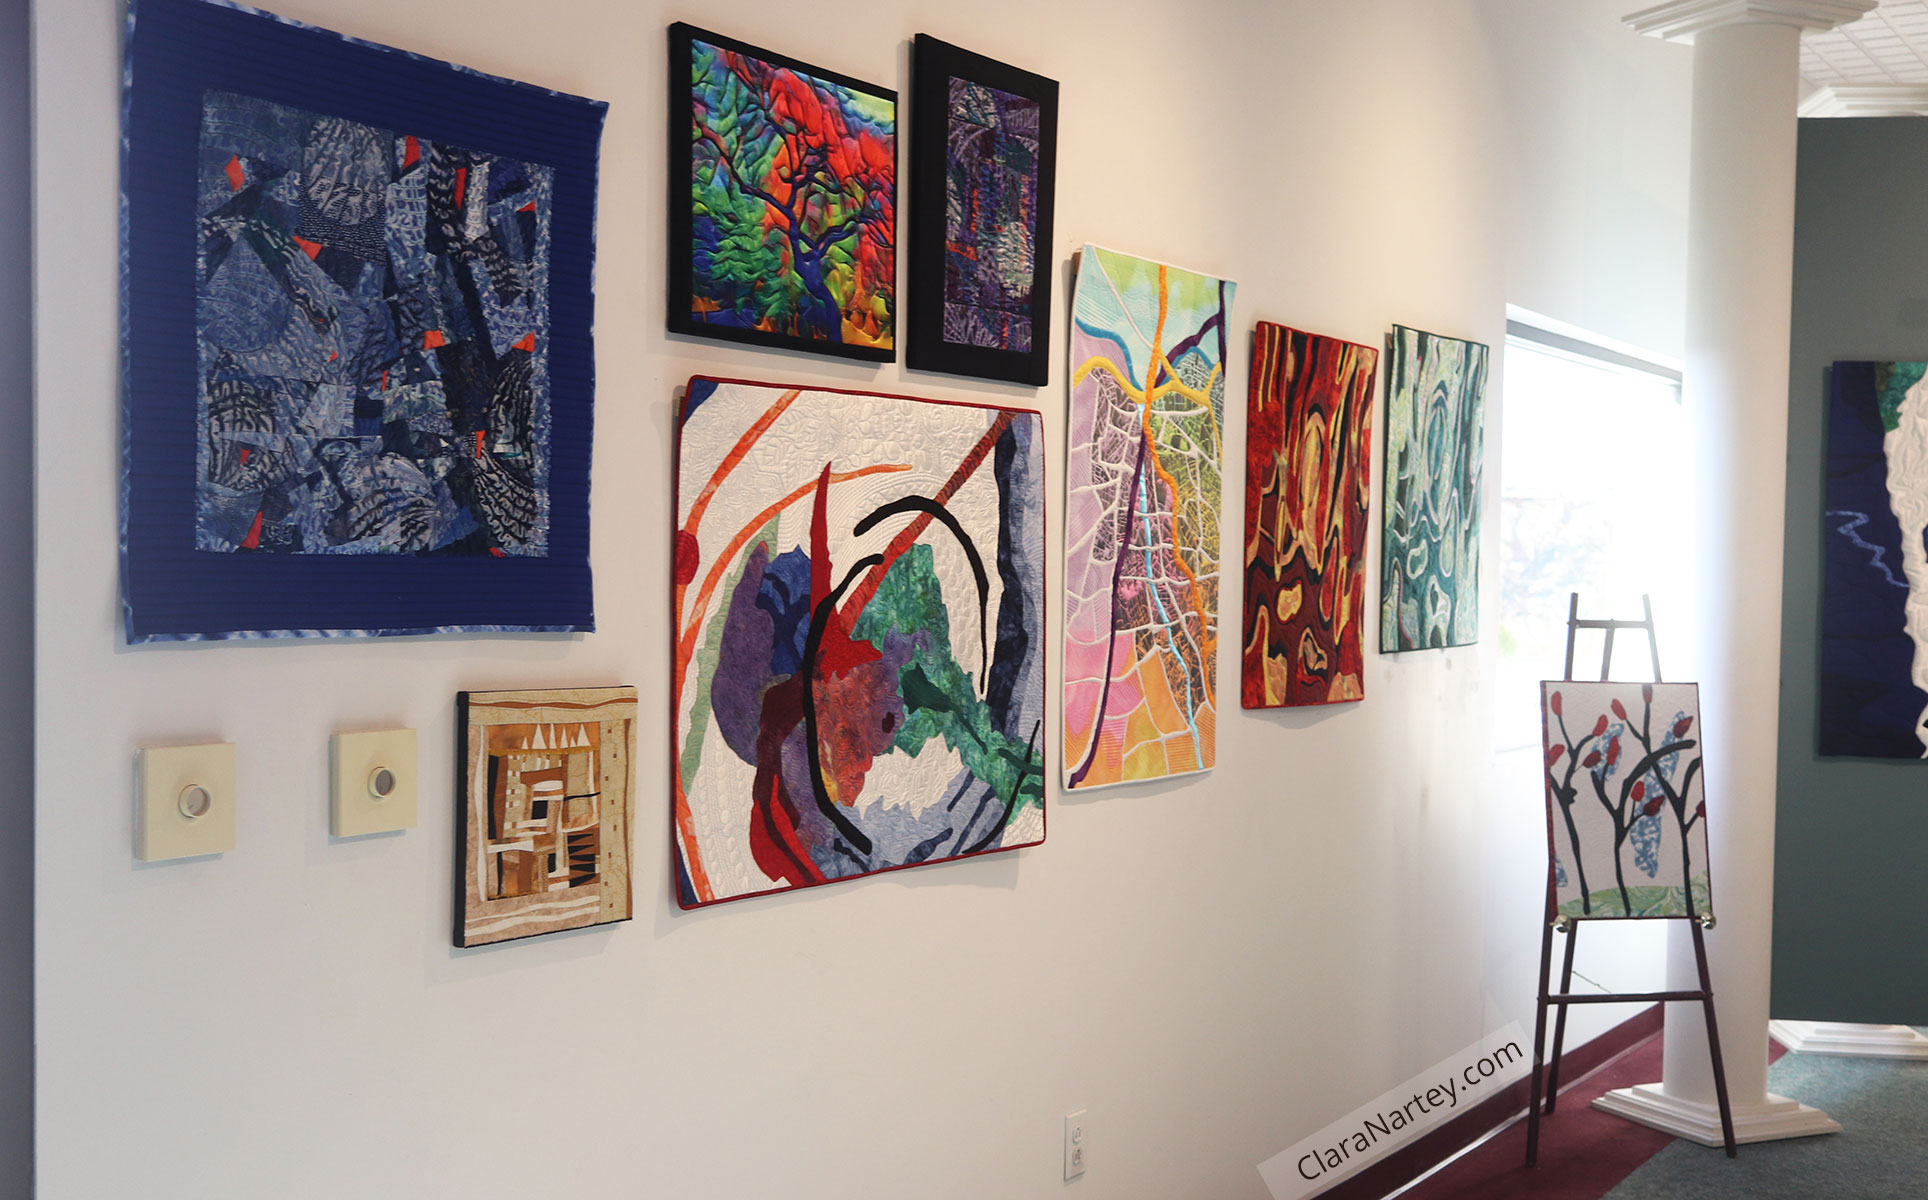 Thread Count - A fiber art exhibition featuring Clara Nartey, Kate Themel, Diane Cadrain, Cathy Whall-Smith and Judy Ross